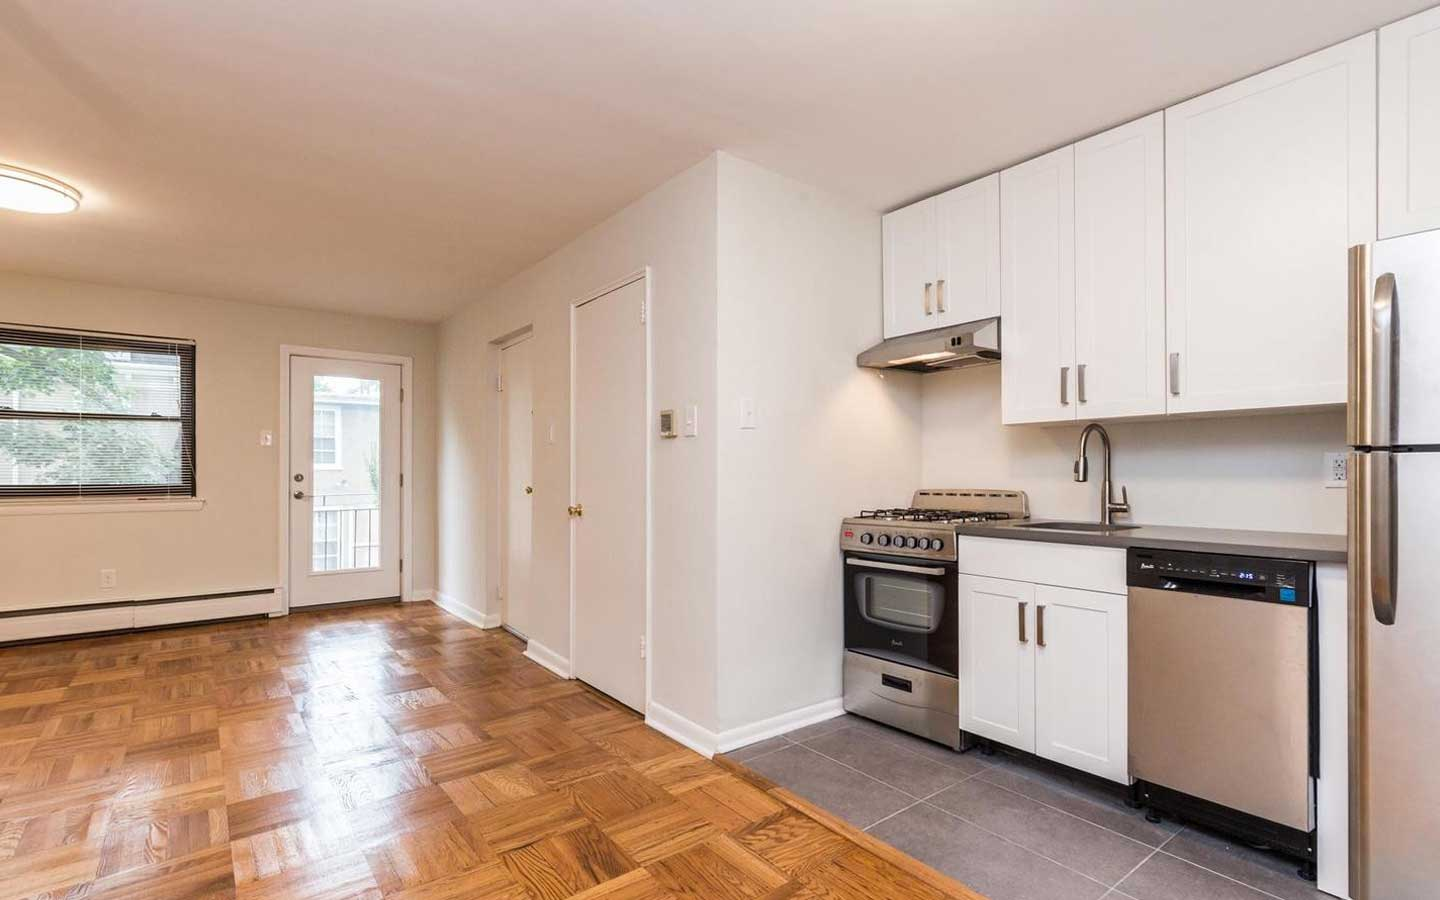 Updated kitchen with sleek tile work with view of open concept living/dining room at Sedgwick Terrace apartments for rent